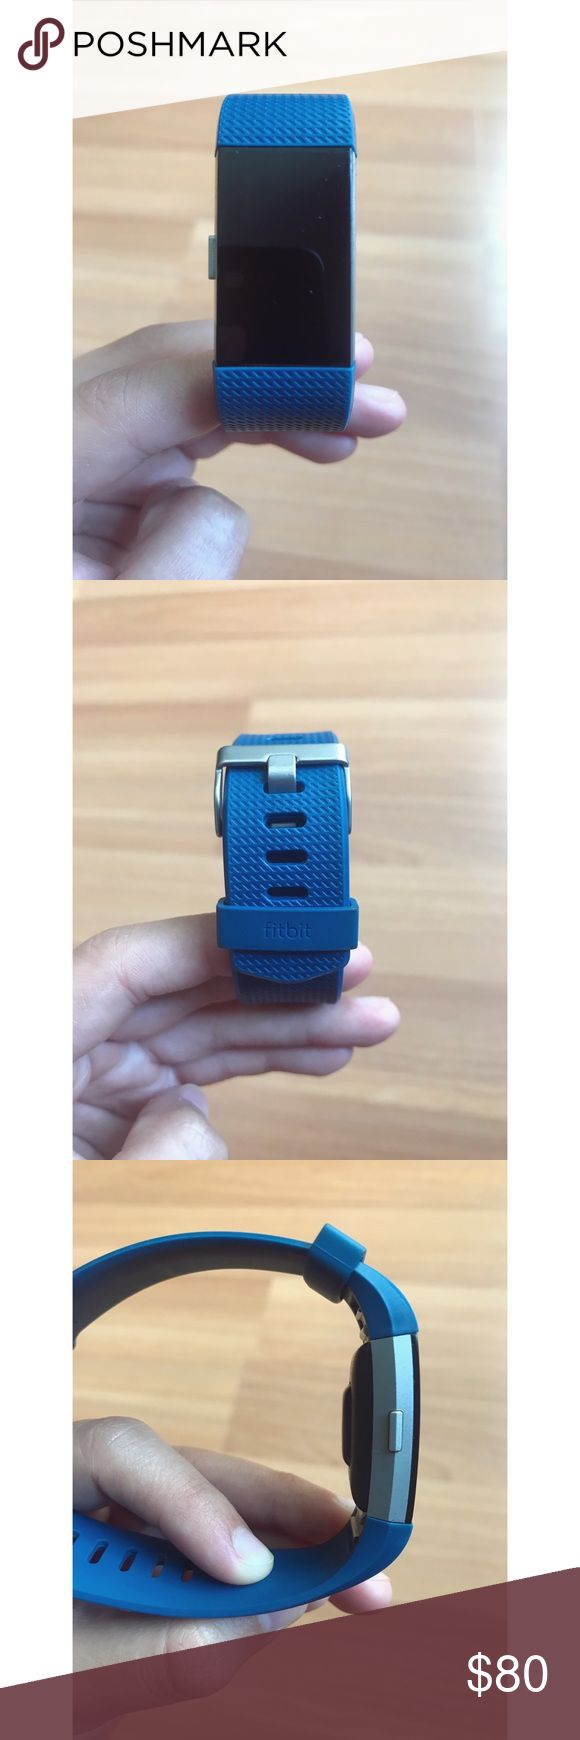 Fitbit Charge 2 Pre-loved and in excellent condition. Size small. Used for half a year. My pictures show great detail of my product. Charger included. Everything you see is what you get Fitbit Accessories Watches